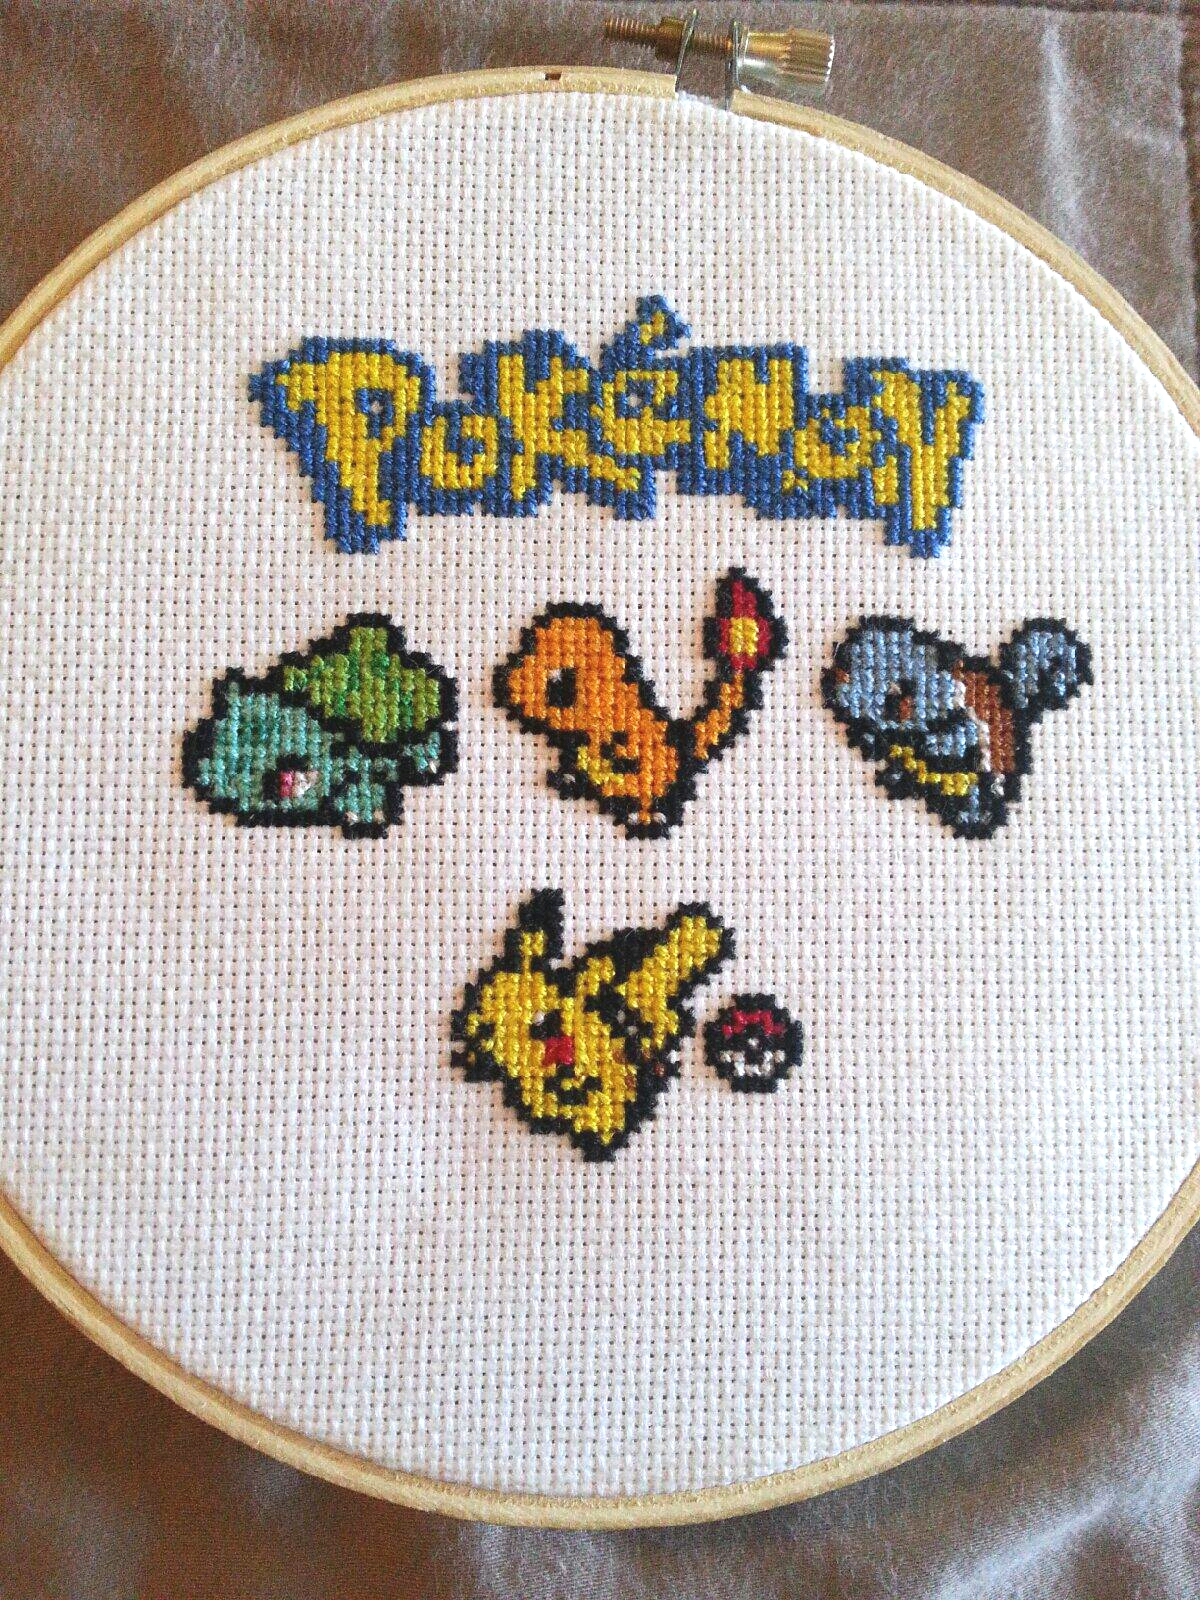 5 Pokemon Pojects You Have To Stitch - Sewing Blog - Sew Magazine